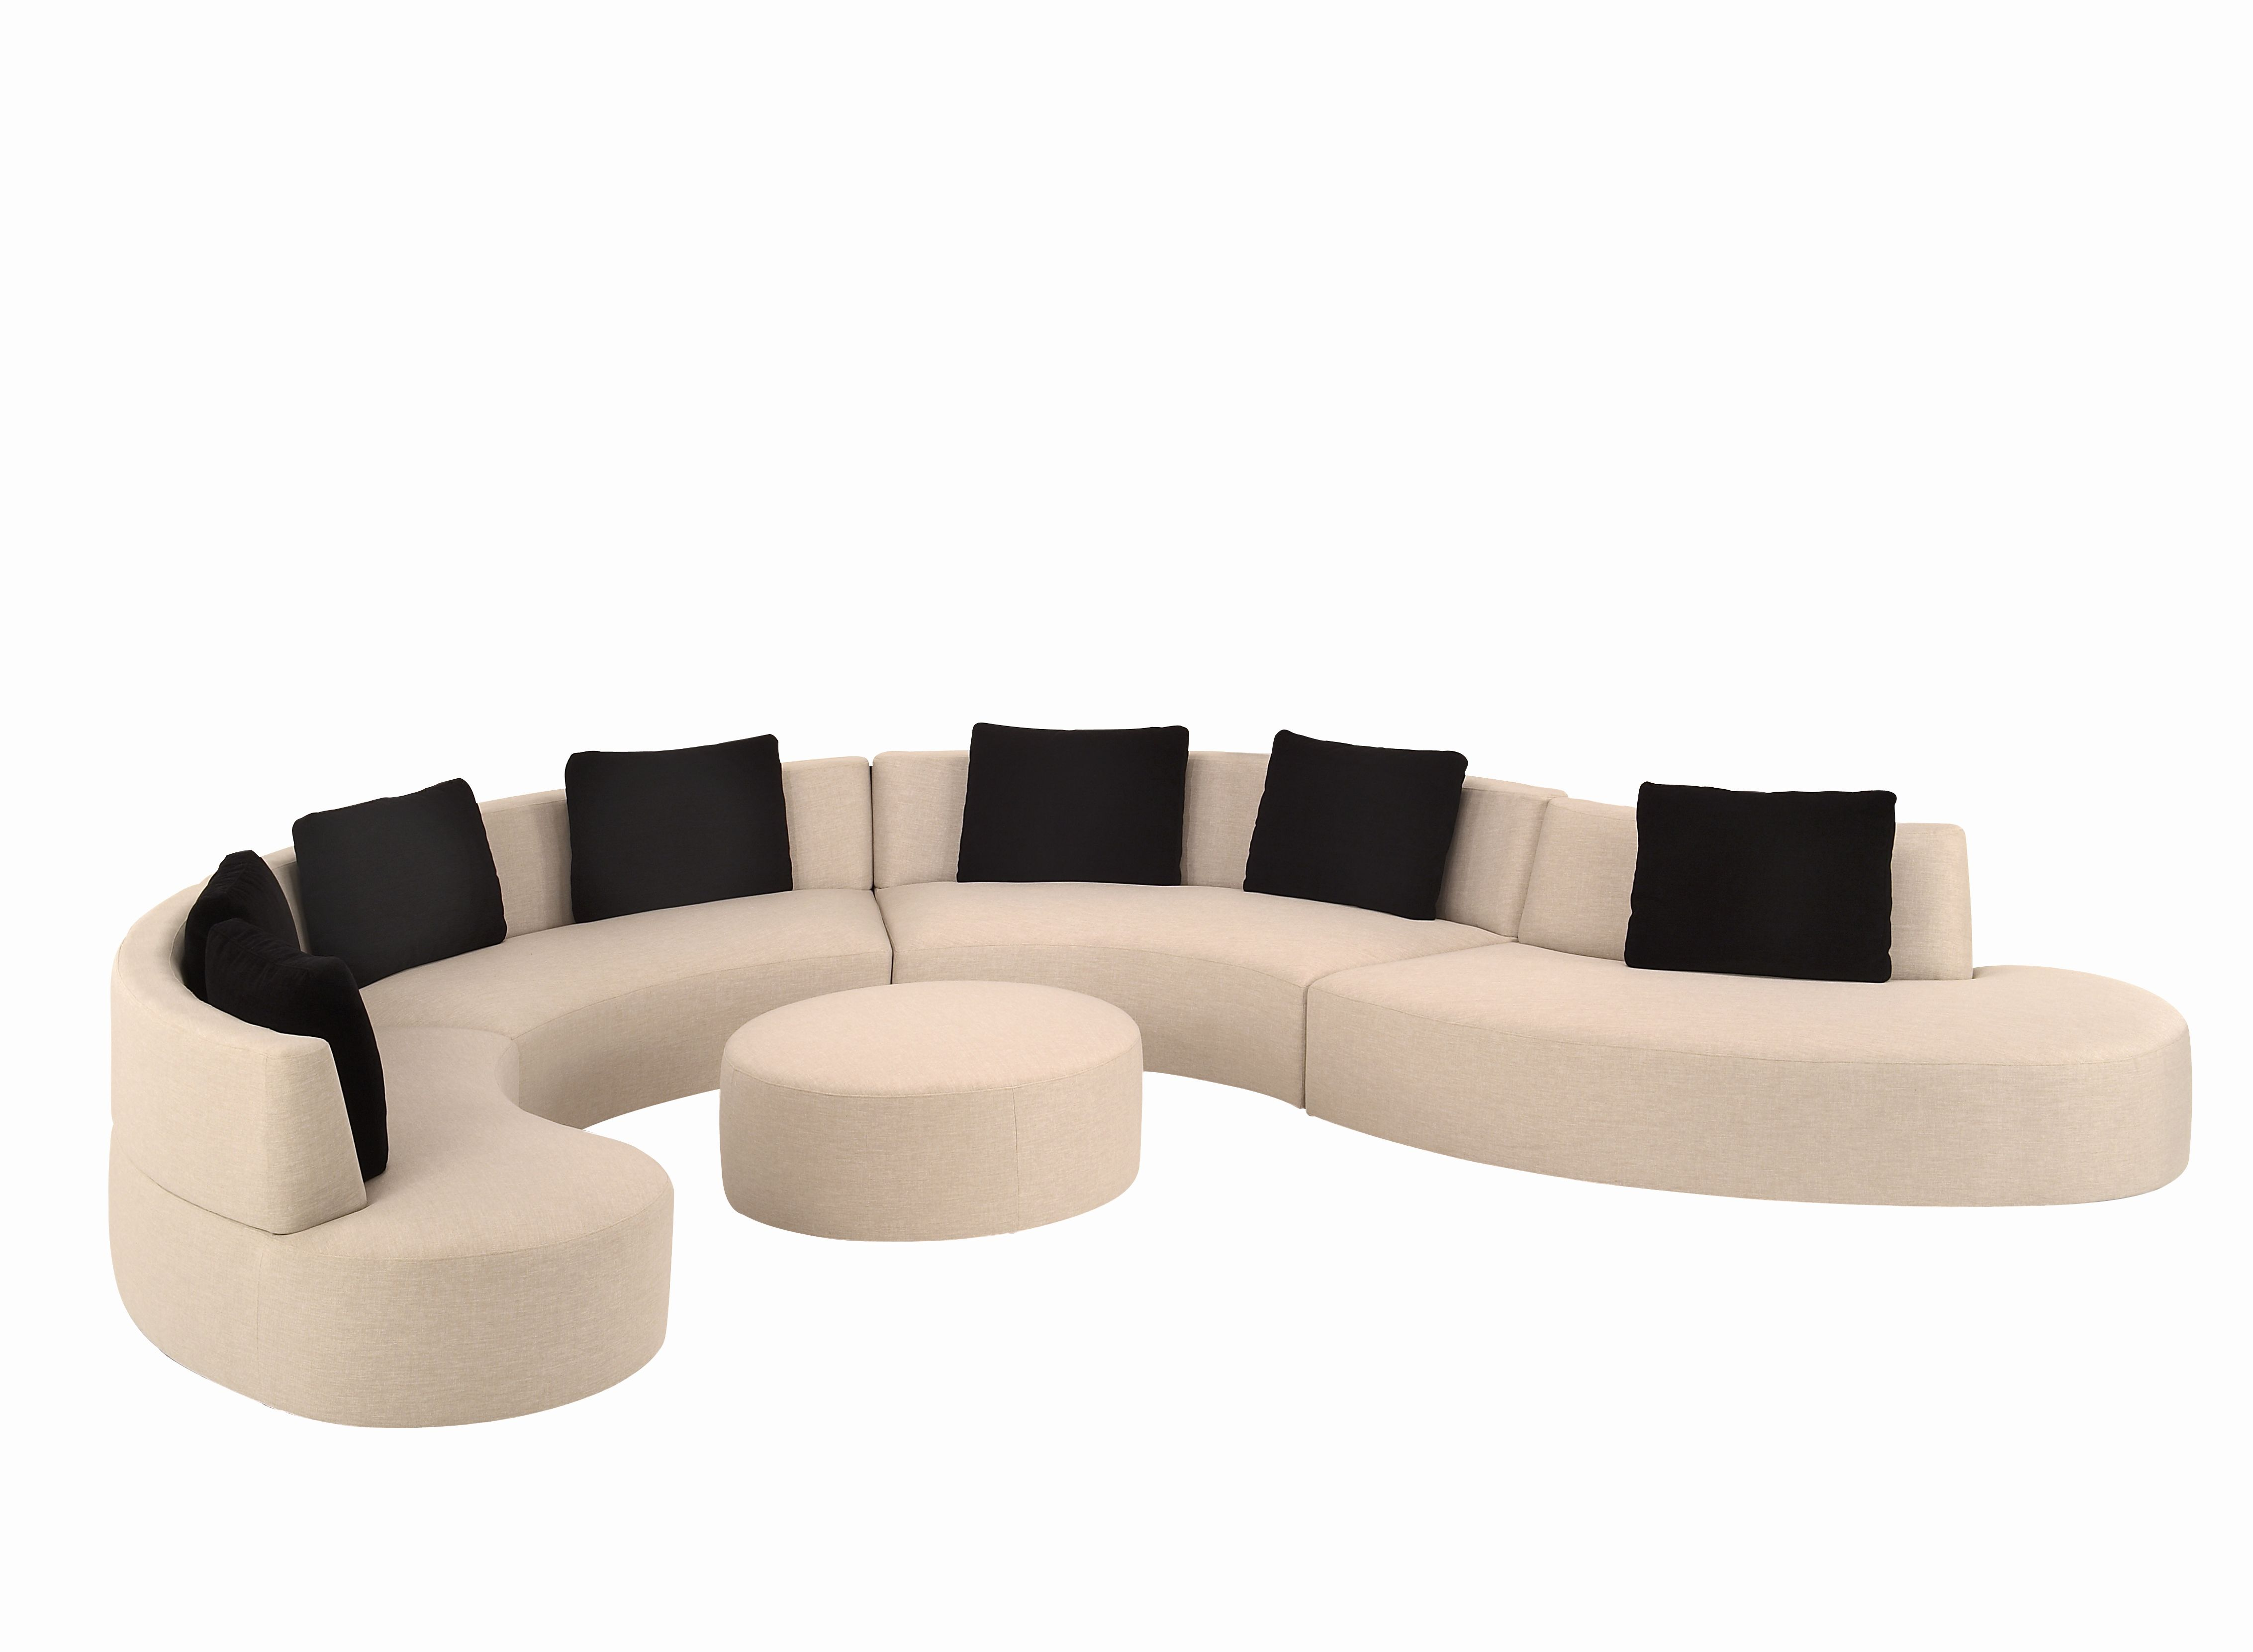 Ideas Contemporary Leather Sectional Sofas Picture Contemporary Leather S Corner Sectional Sofa Sectional Sofas Living Room Contemporary Leather Sectional Sofa